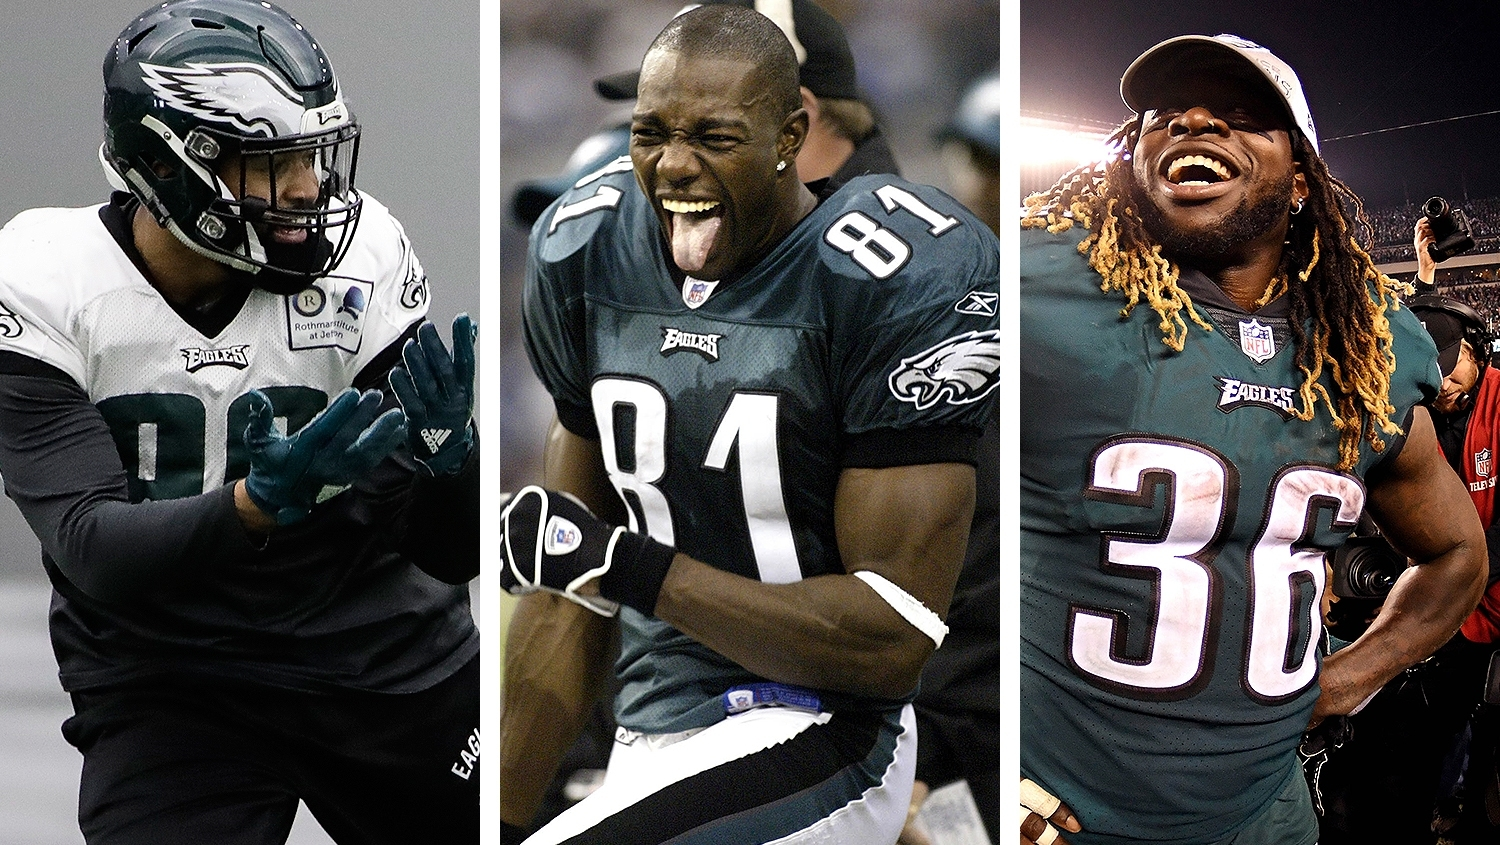 Terrell Owens' Hof Case, Eagles Rookies, And More In Roob's with regard to Terrell Owens Super Bowl